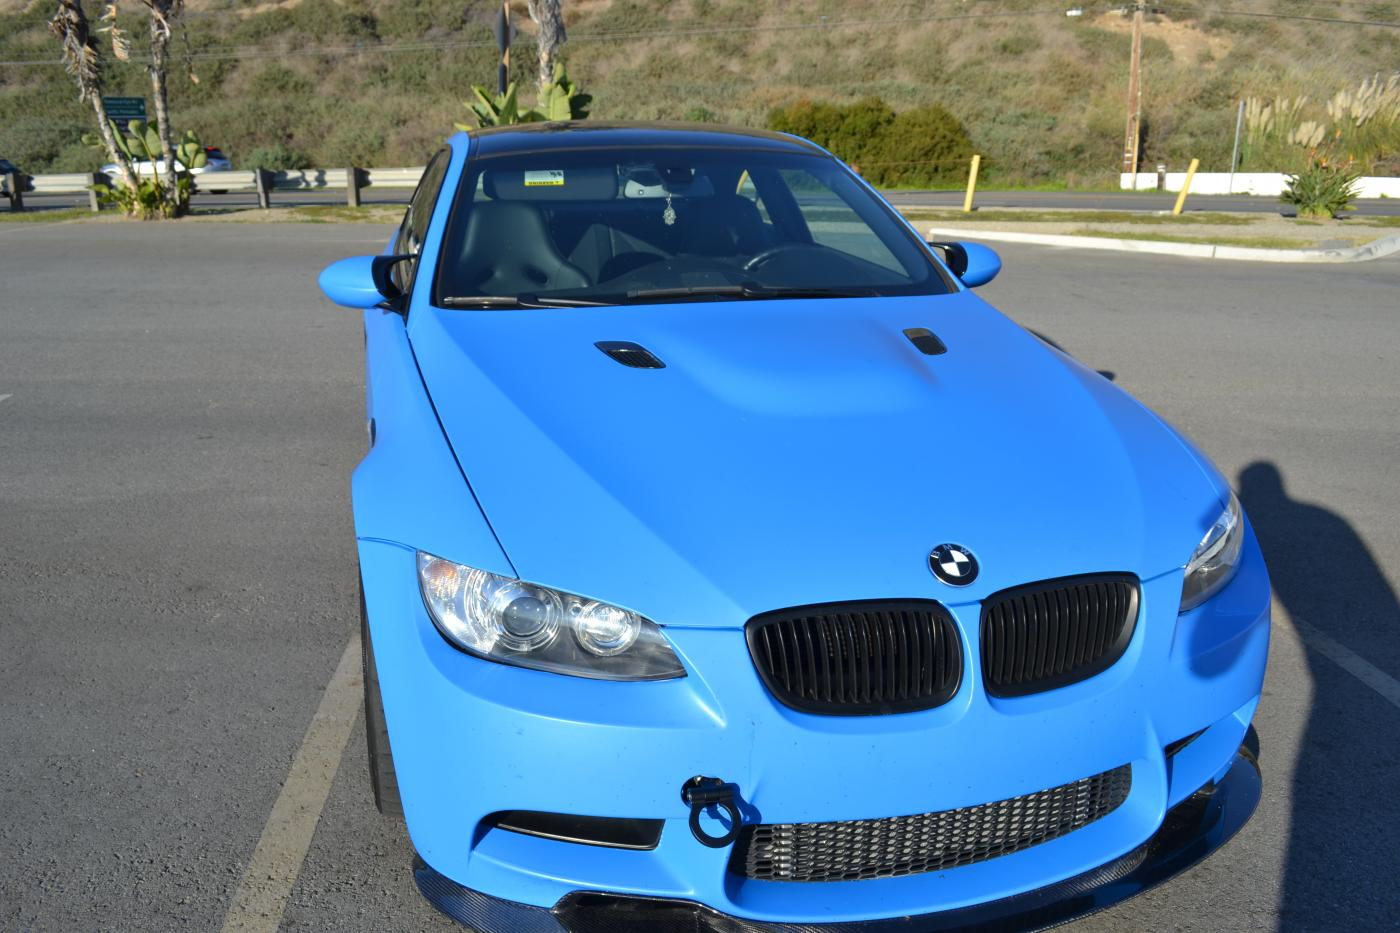 90210 Wrap Custom Matte Blue Vinyl Wrap Before And After